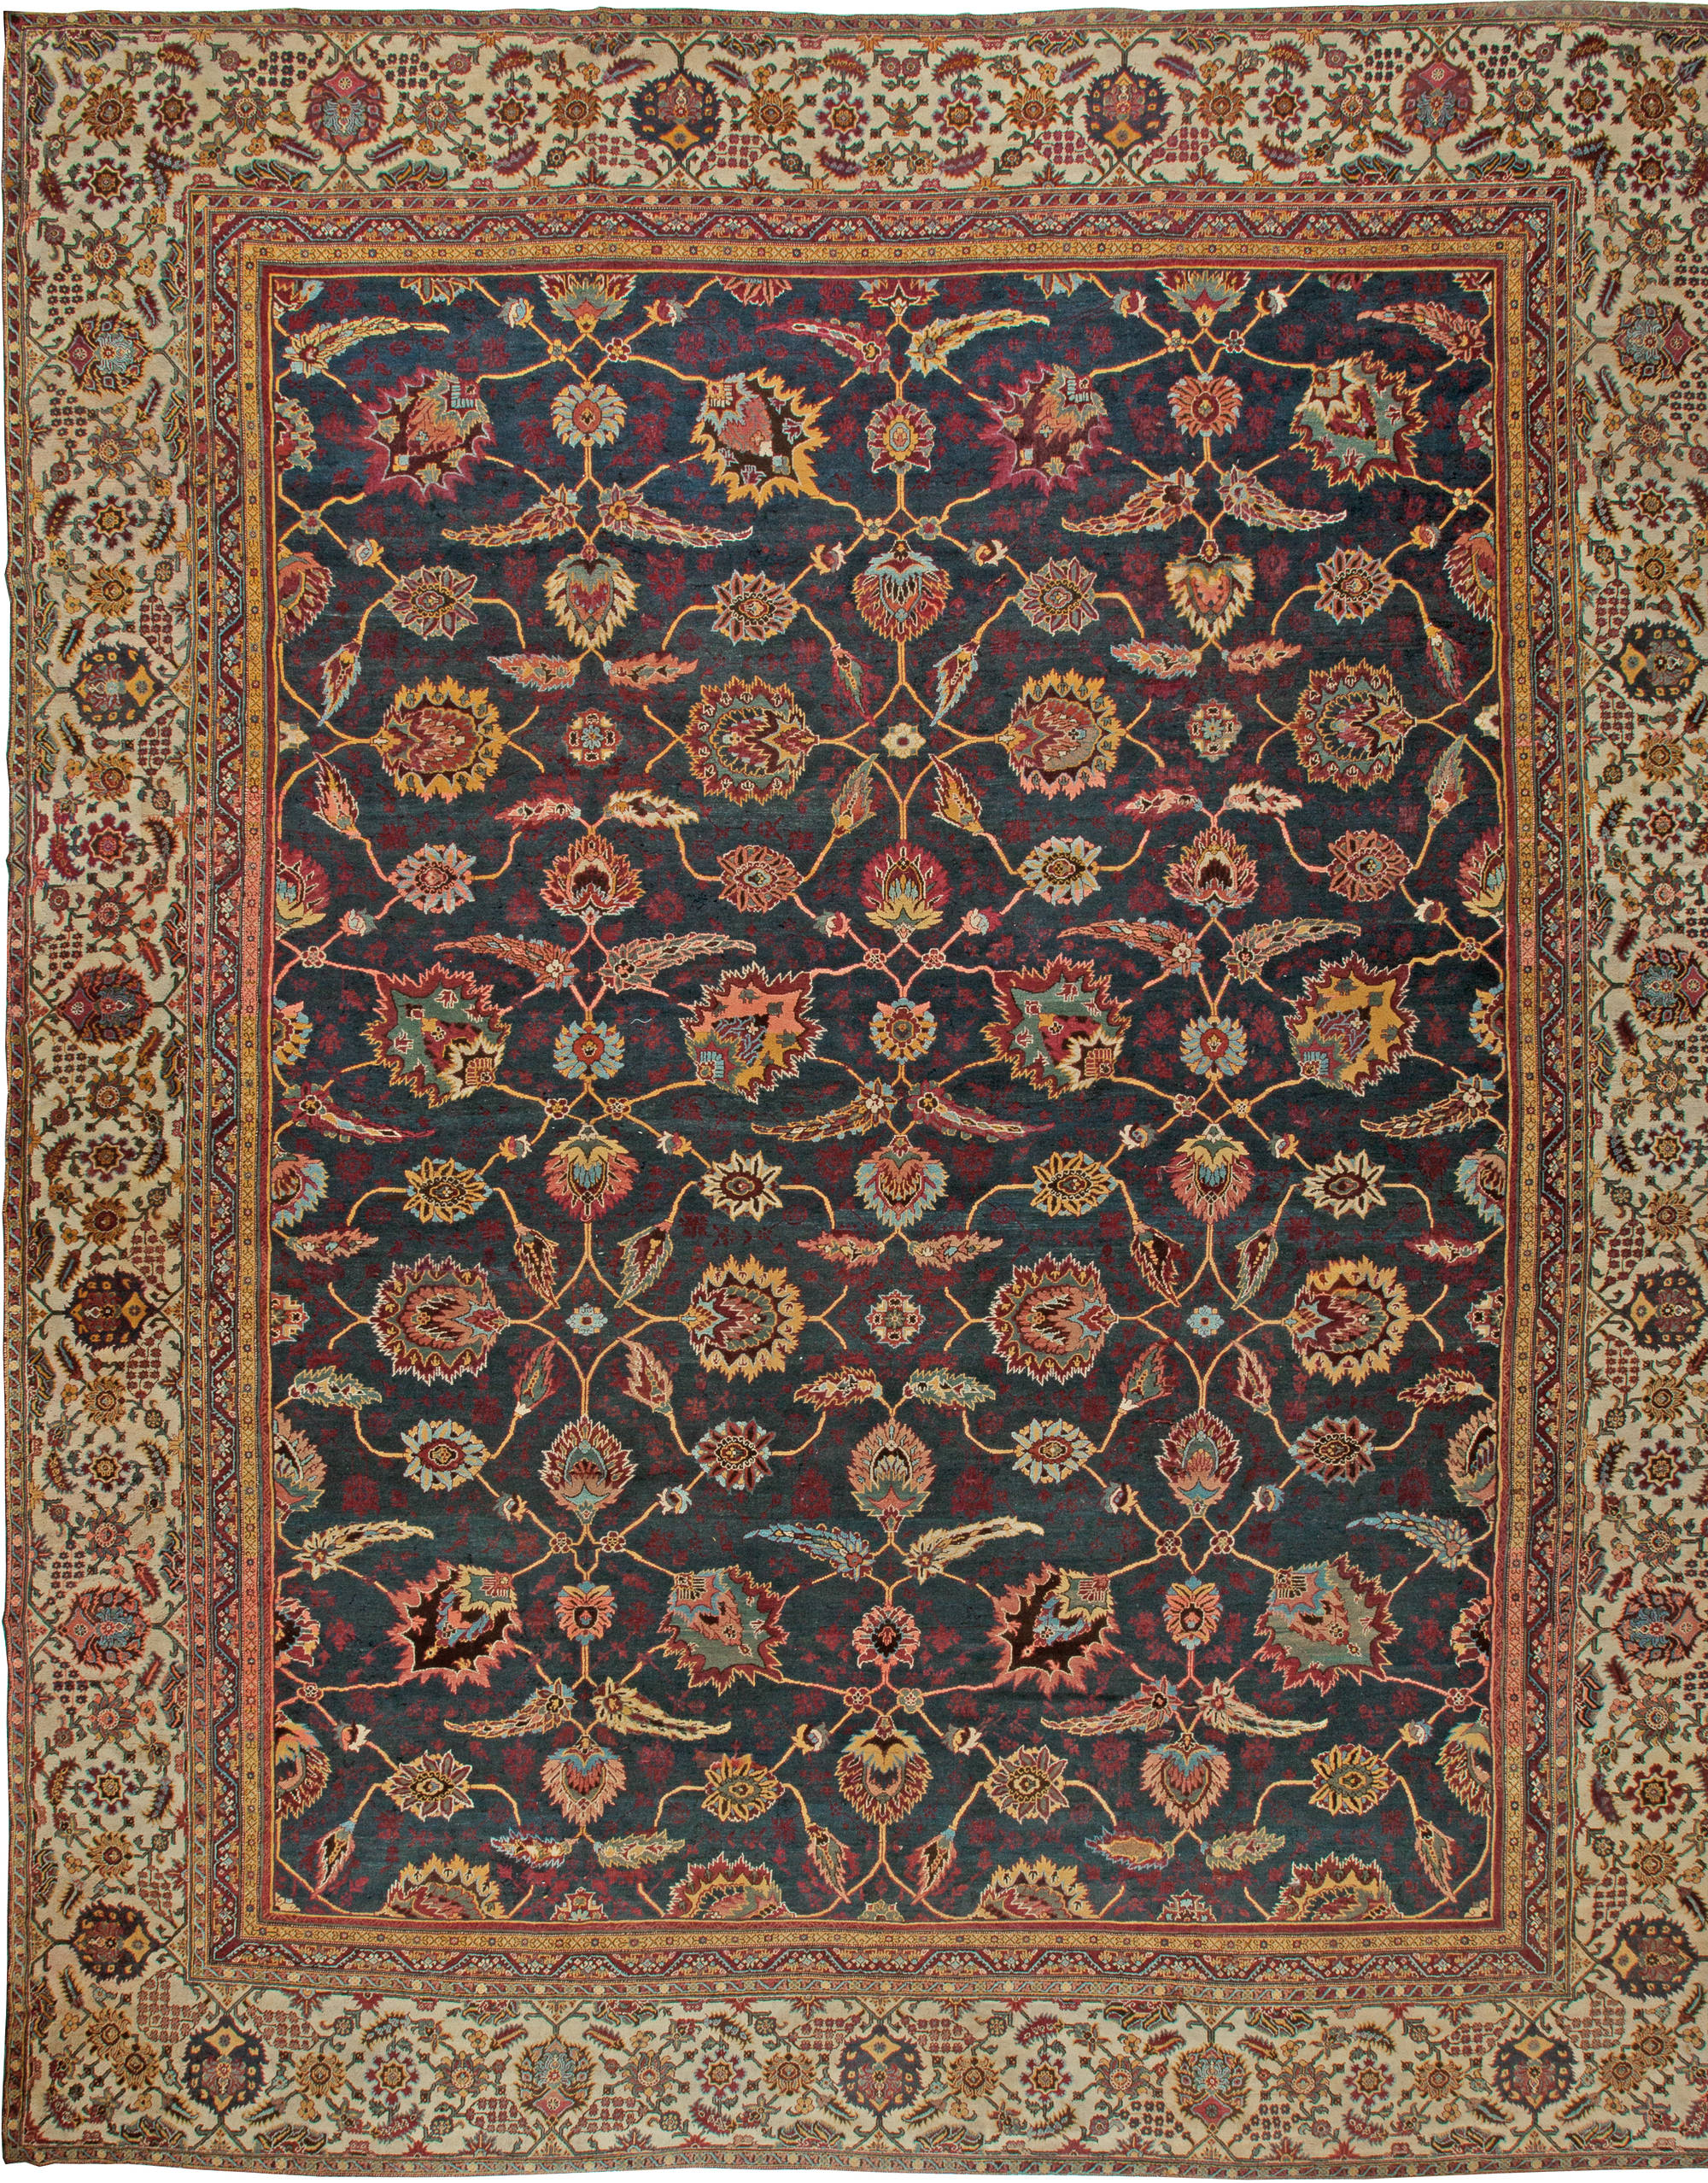 Antique Amritsar Rugs & Carpets For Sale (Indian Amritsar ...